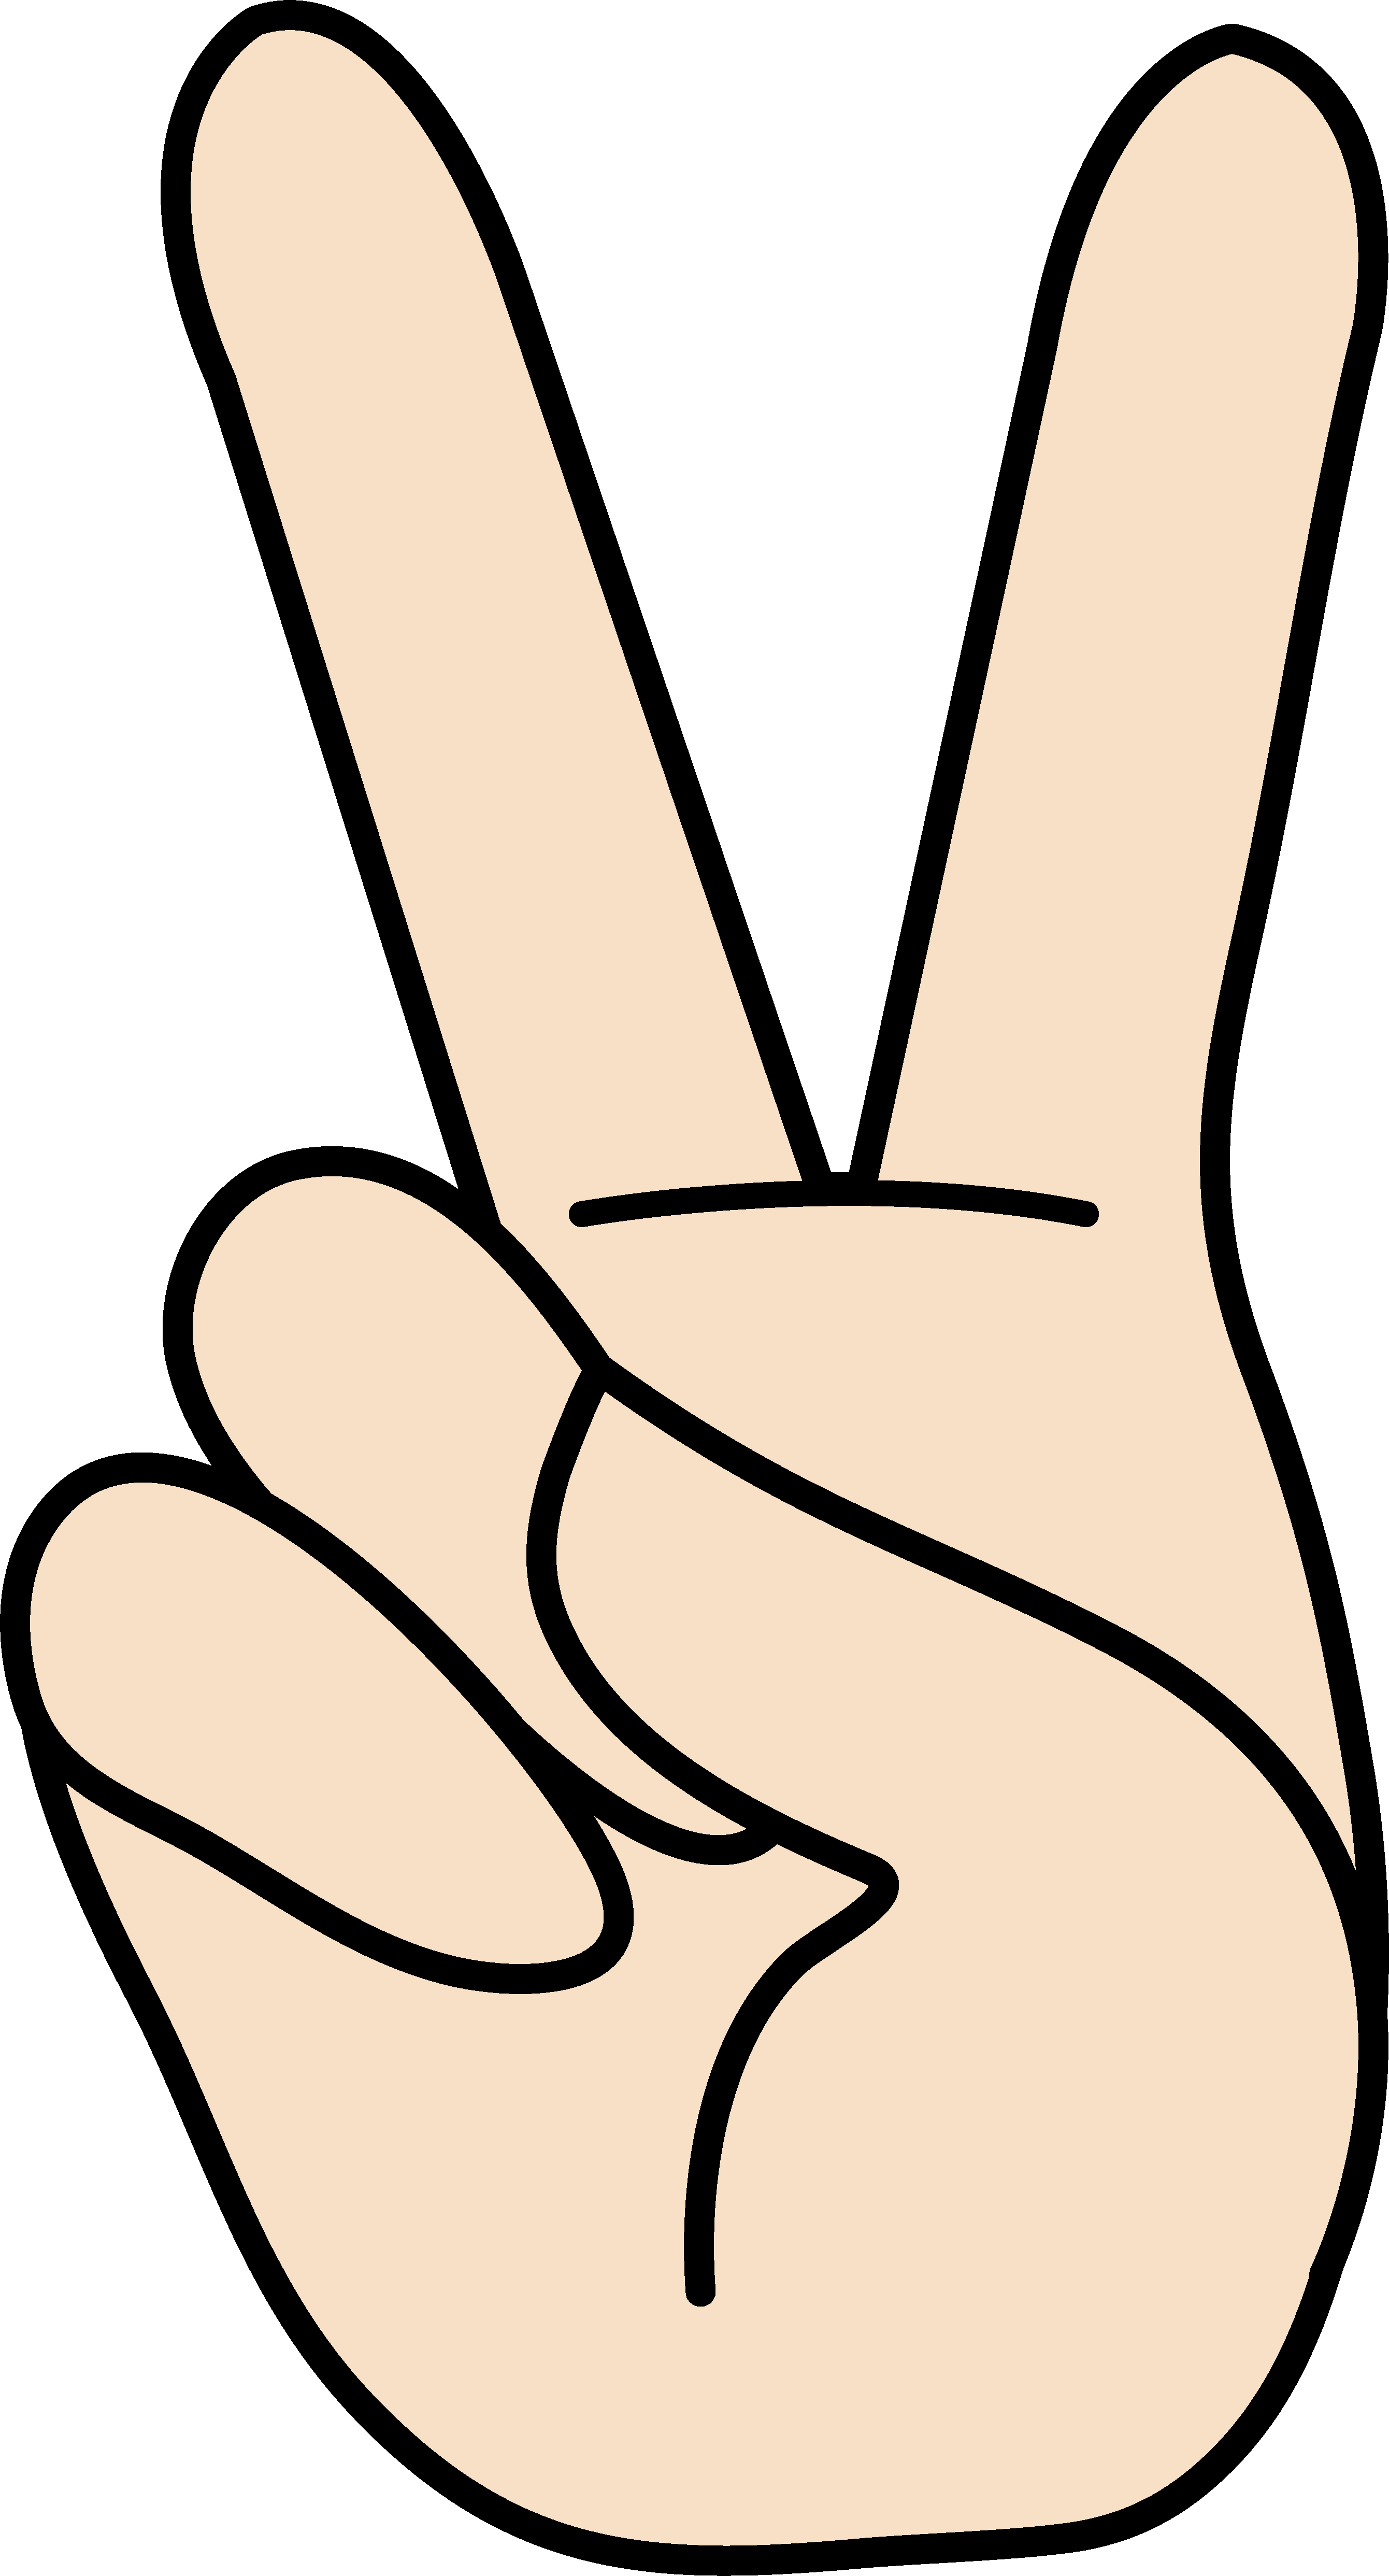 Hand Peace Sign Clipart | Clipart Panda - Free Clipart Images